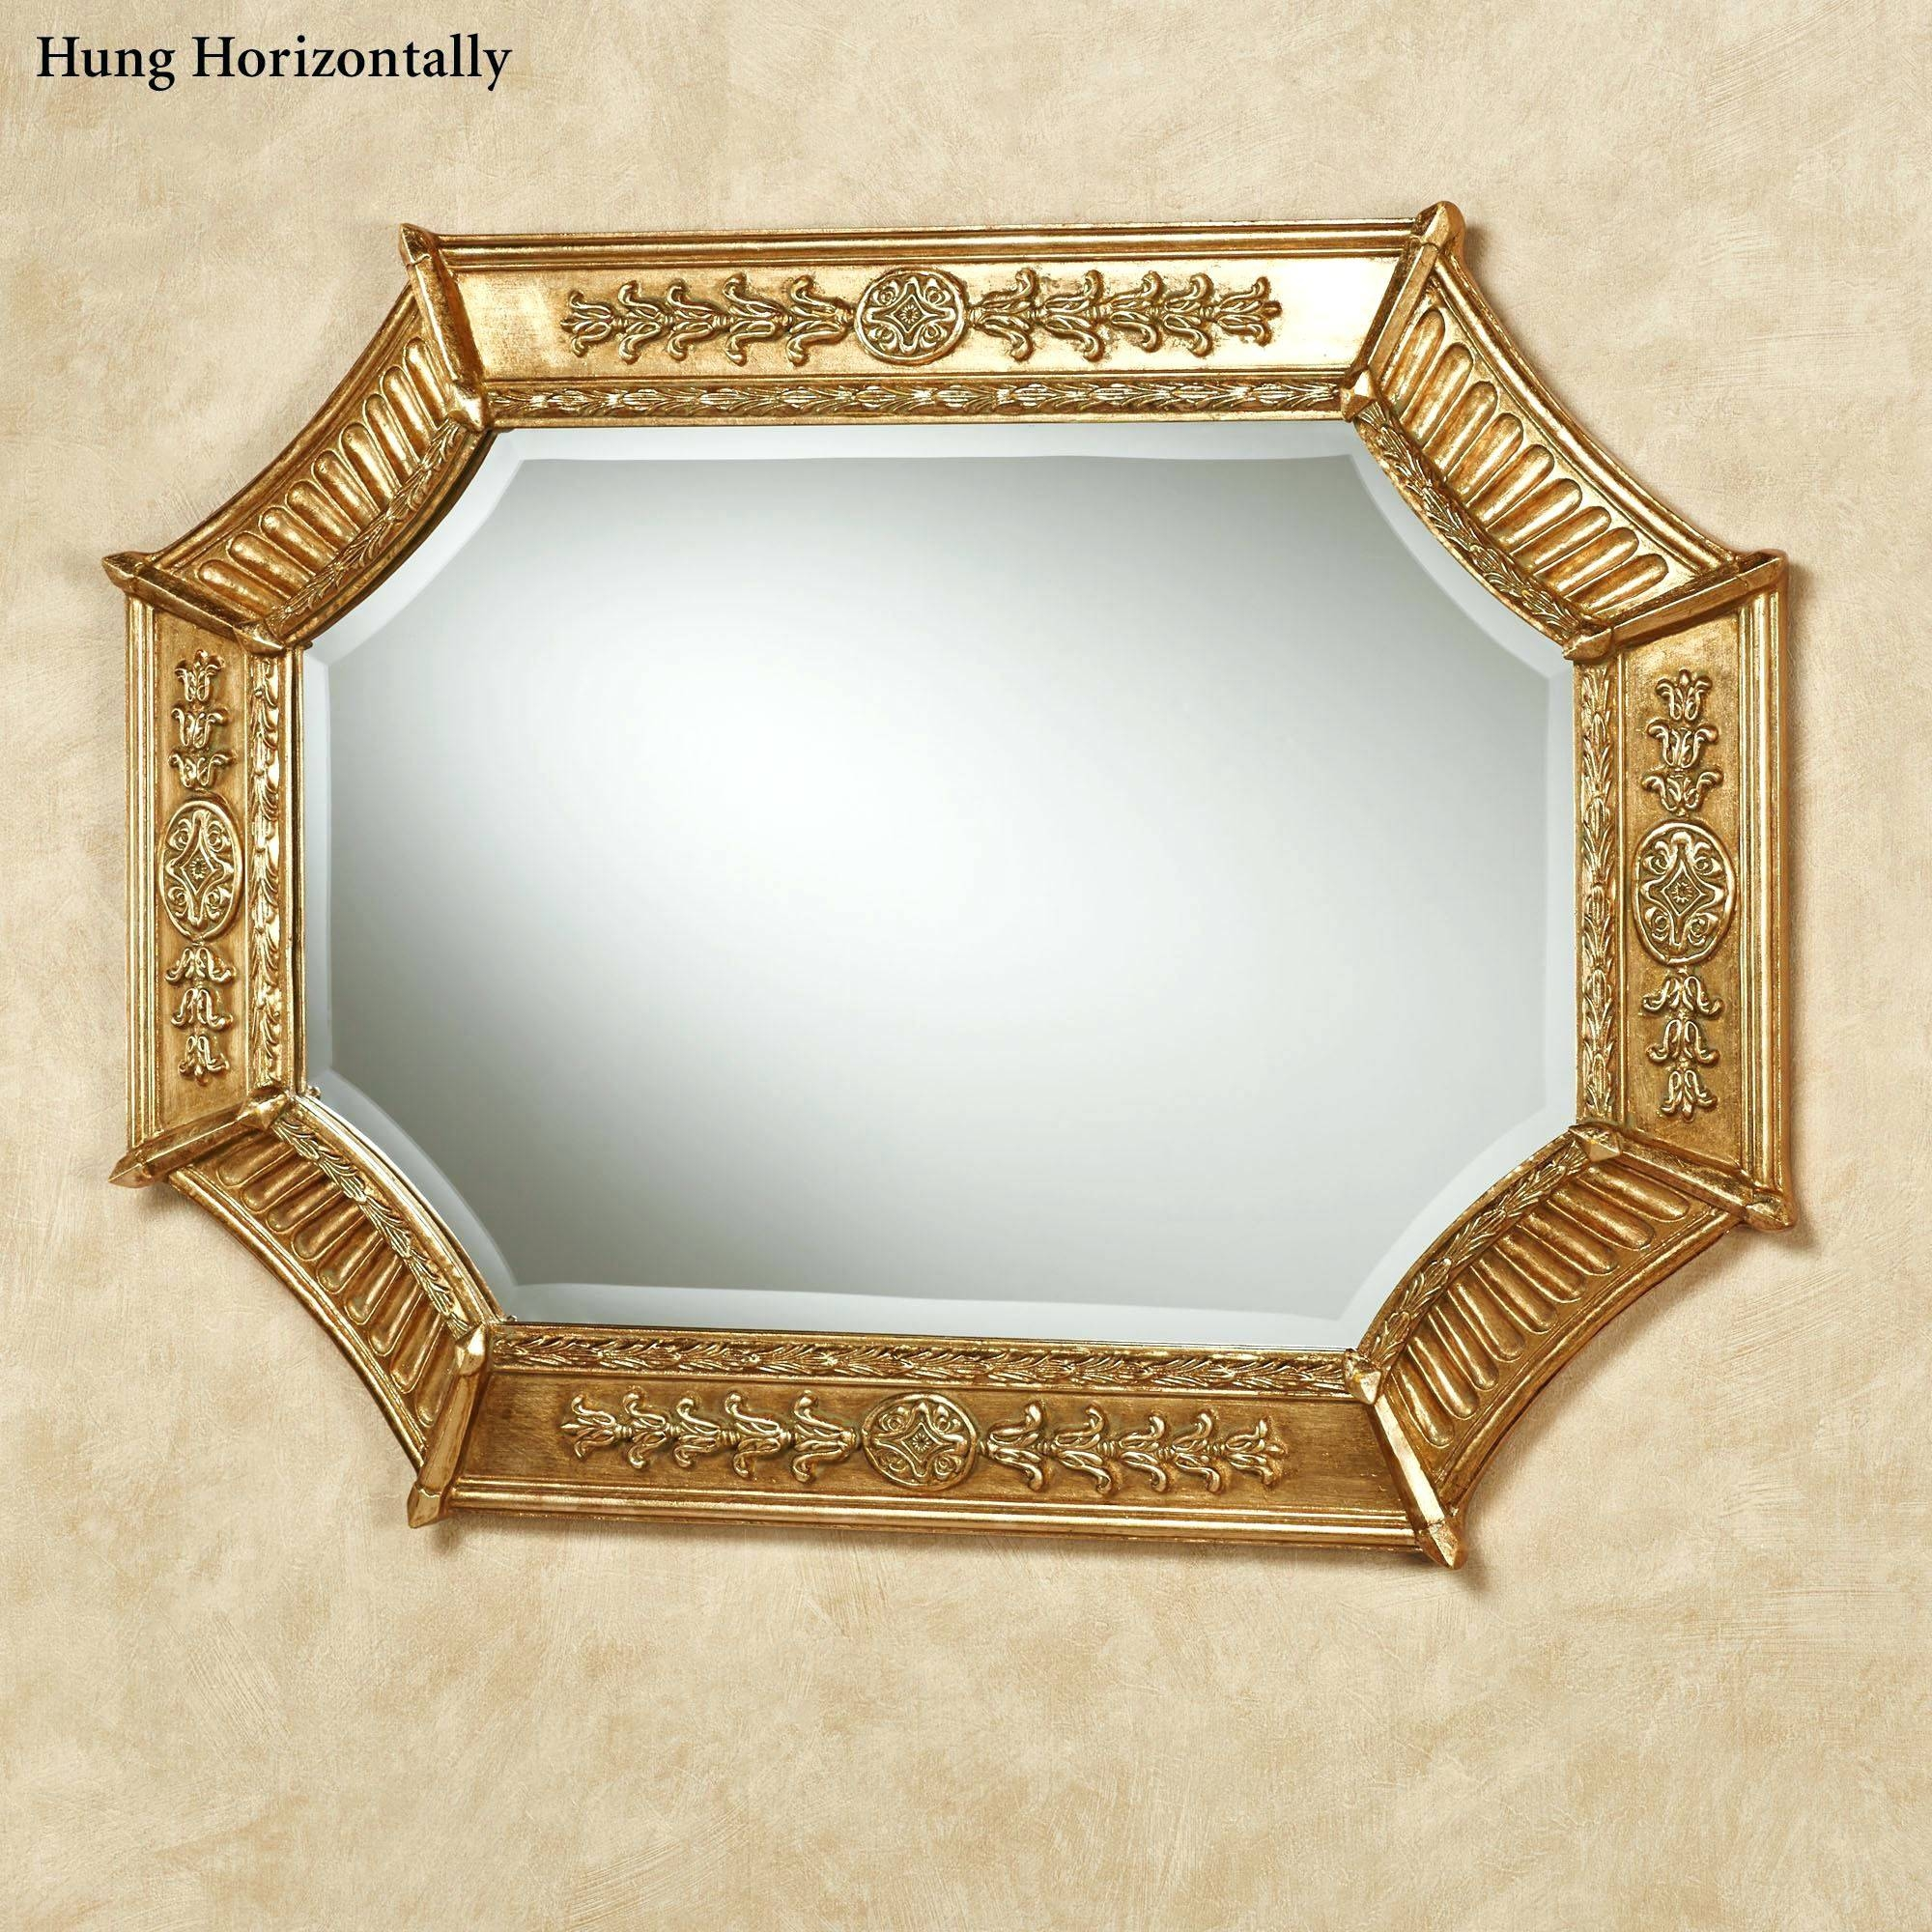 Wall Mirrors ~ Rose Gold Round Wall Mirror Small Gold Wall Mirrors intended for Large Round Gold Mirrors (Image 15 of 15)